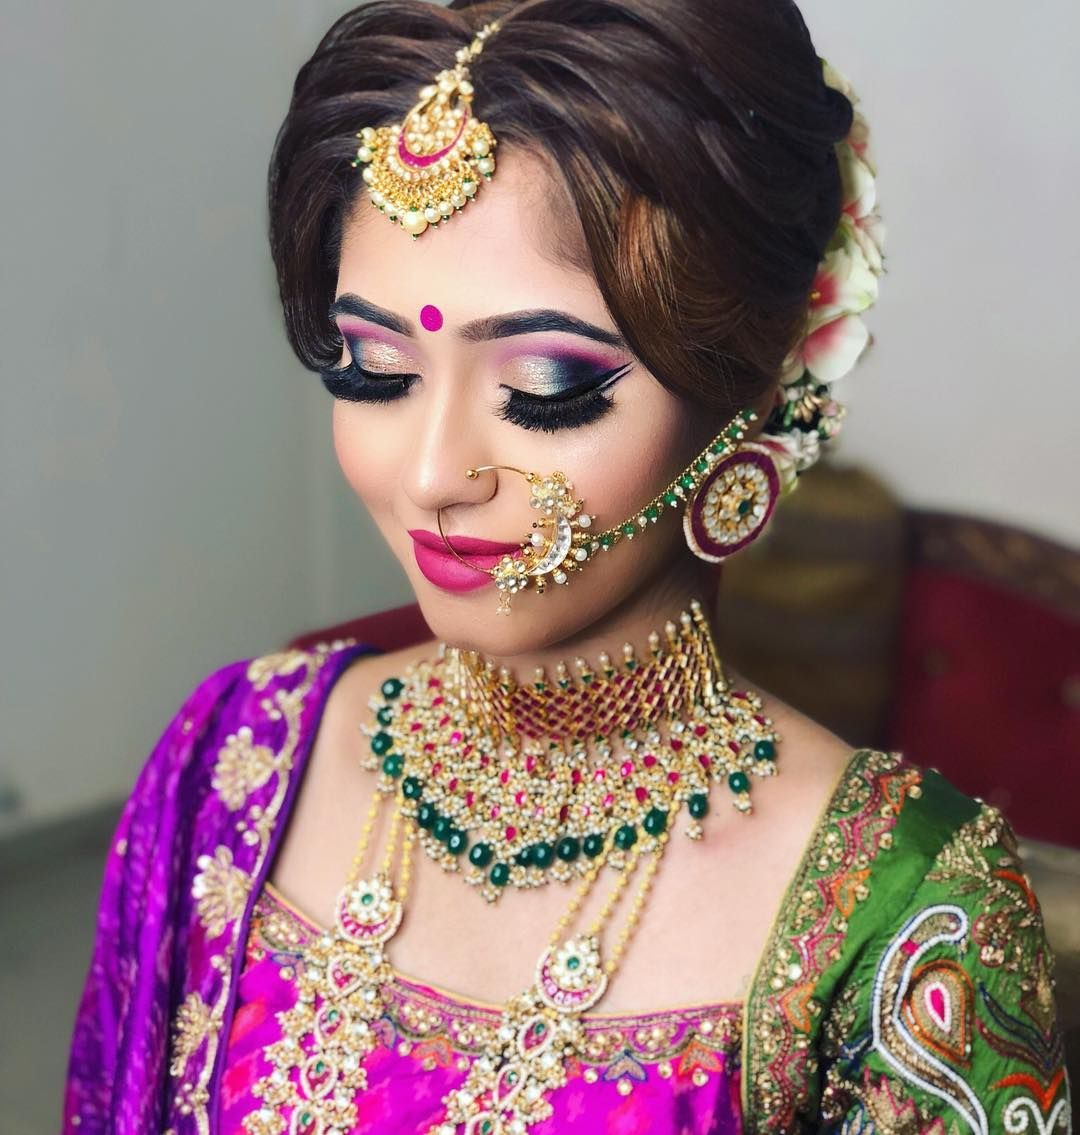 """Richa Dave on Instagram """"Latest Look Of """"Our Live Makeup"""